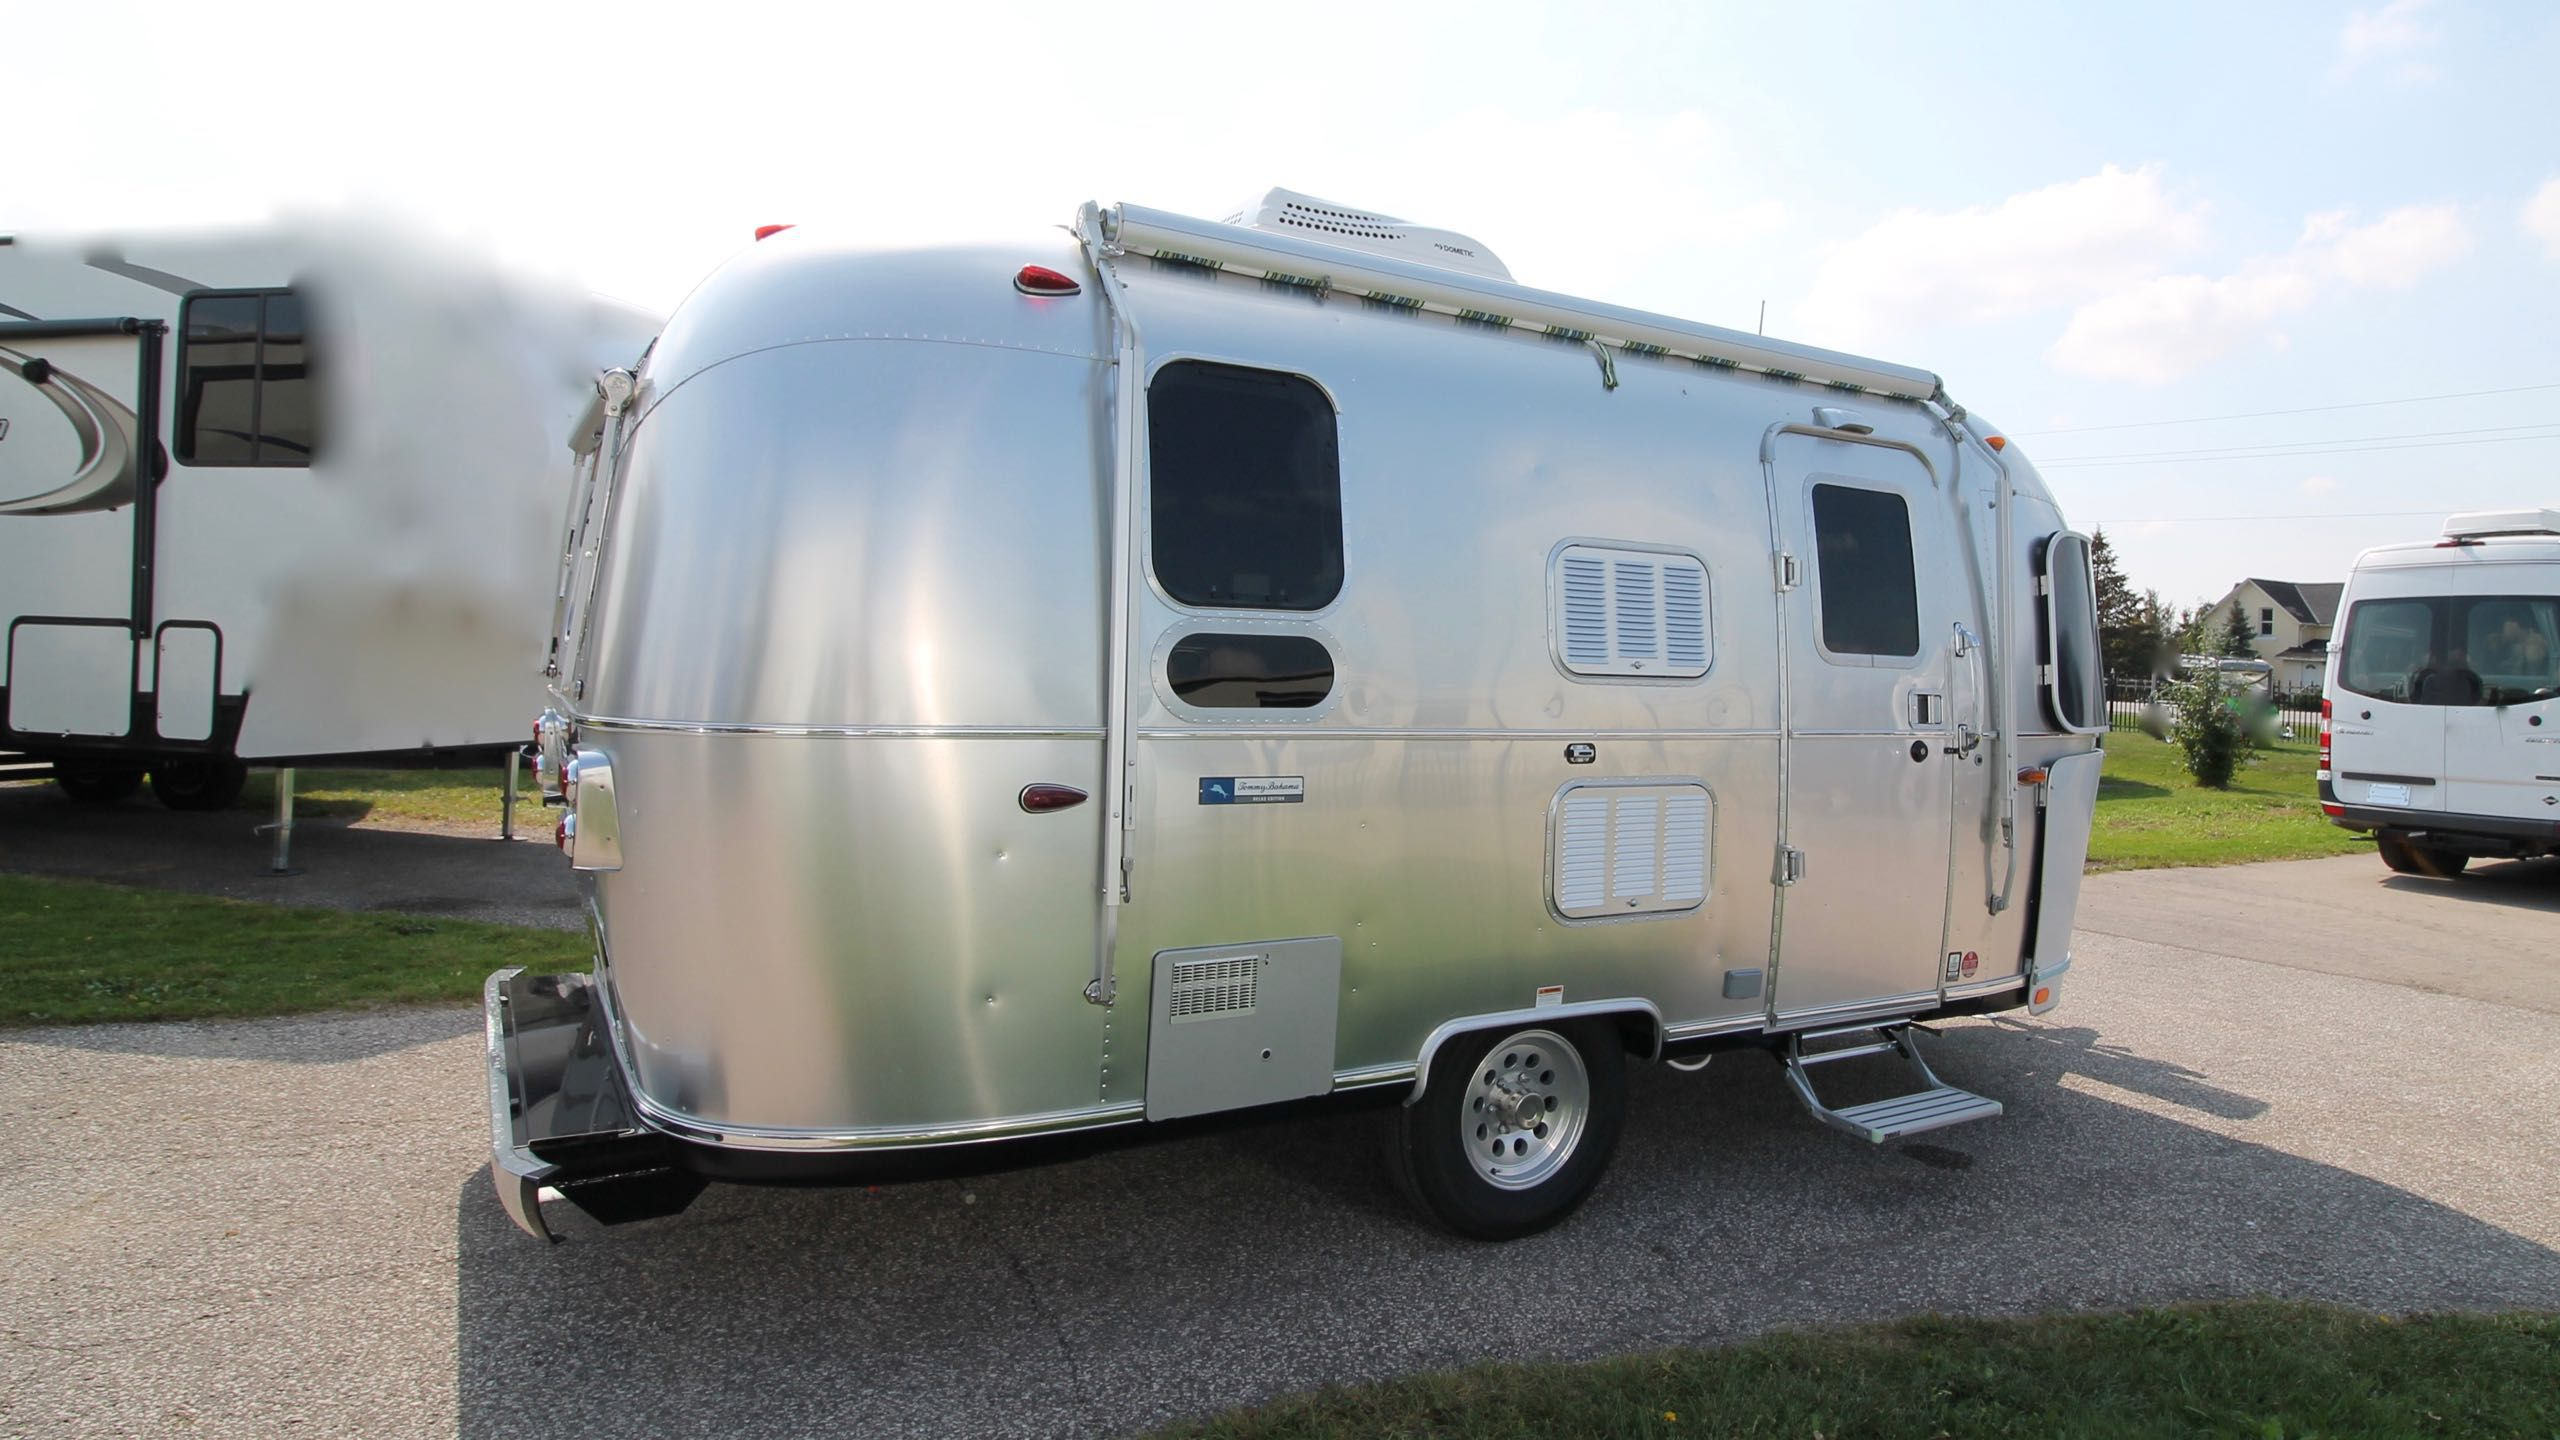 Airstream Basecamp For Sale >> Airstream trailers for sale in ON - TrailersMarket.com